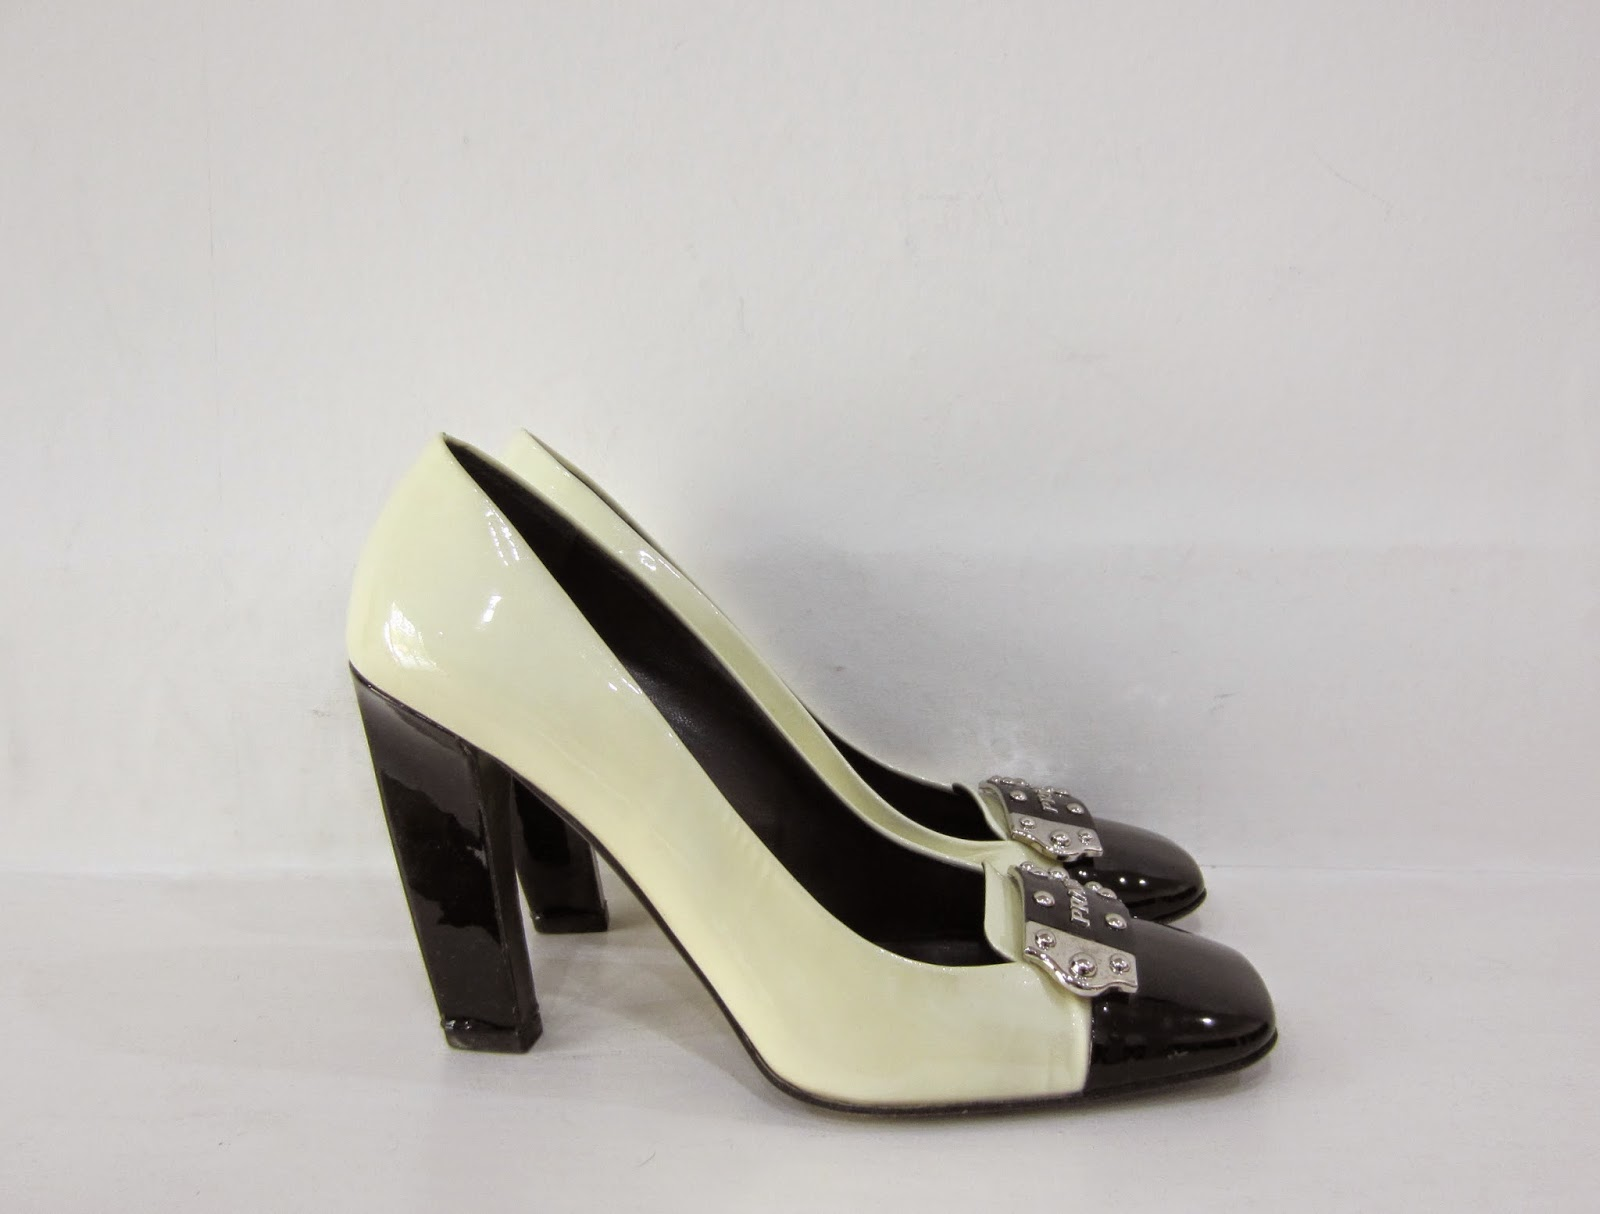 Prada Cream & Black Patent High Heeled Shoes